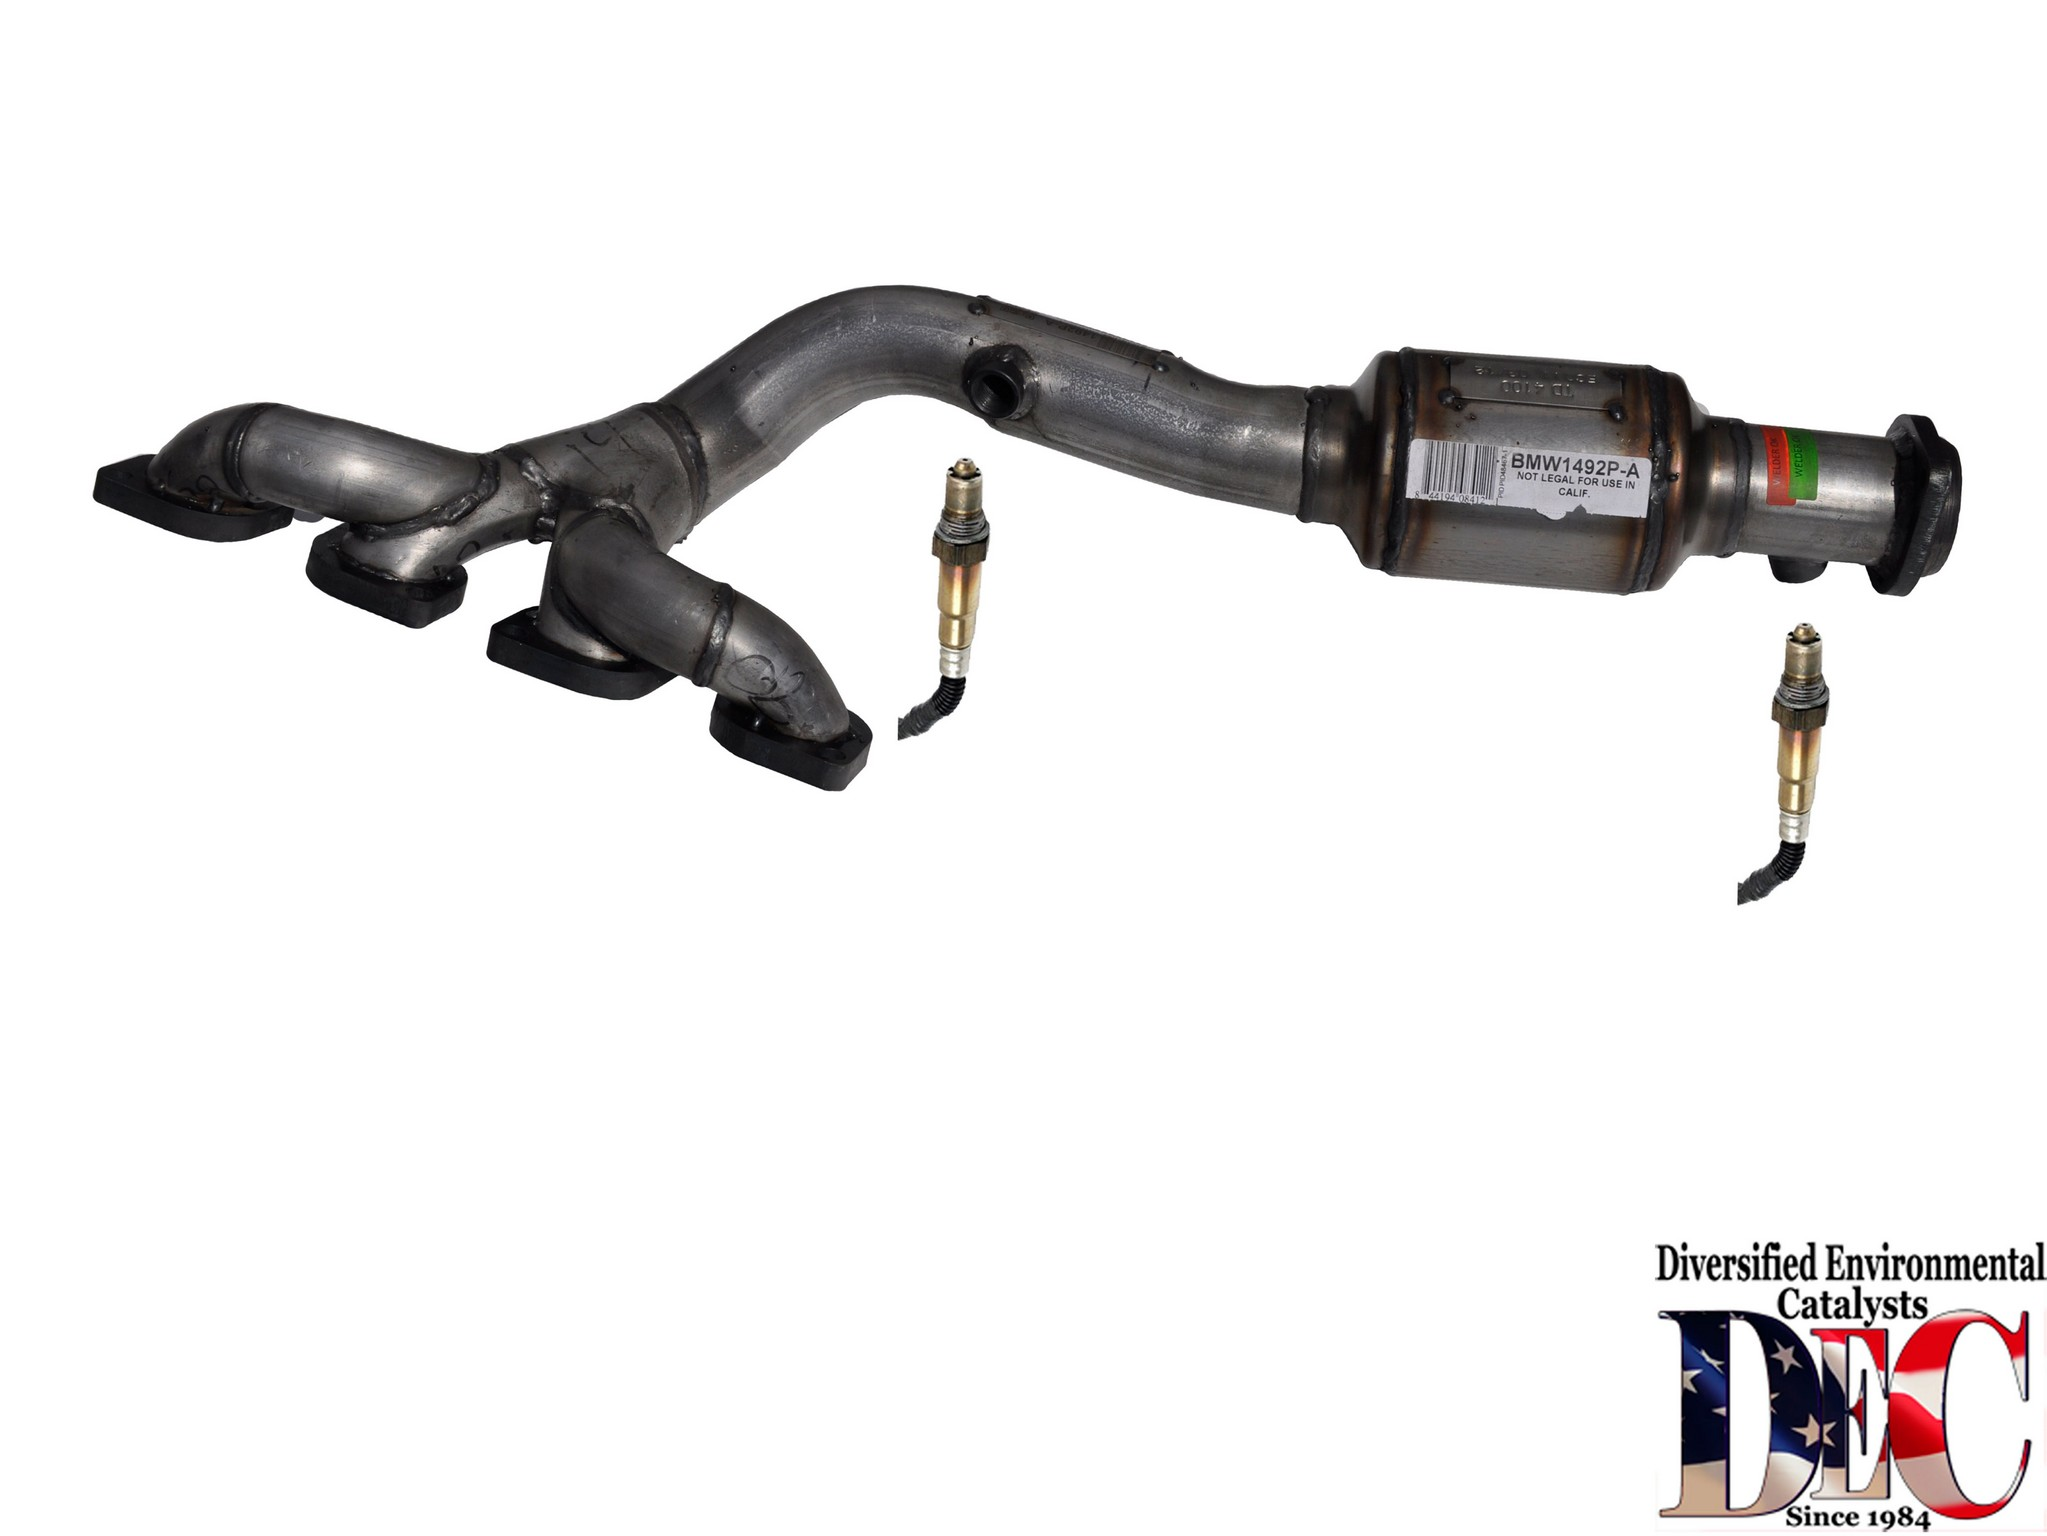 T11958926 1997 subaru outback speed sensor as well Jeep Cherokee Parts Diagram also Diagram Of 130 I Bmw Fuse Box likewise Bmw X5 Maf Sensor Location in addition Pontiac Montana 2004 2005 Fuse Box Diagram. on 2000 bmw 528i fuse box diagram